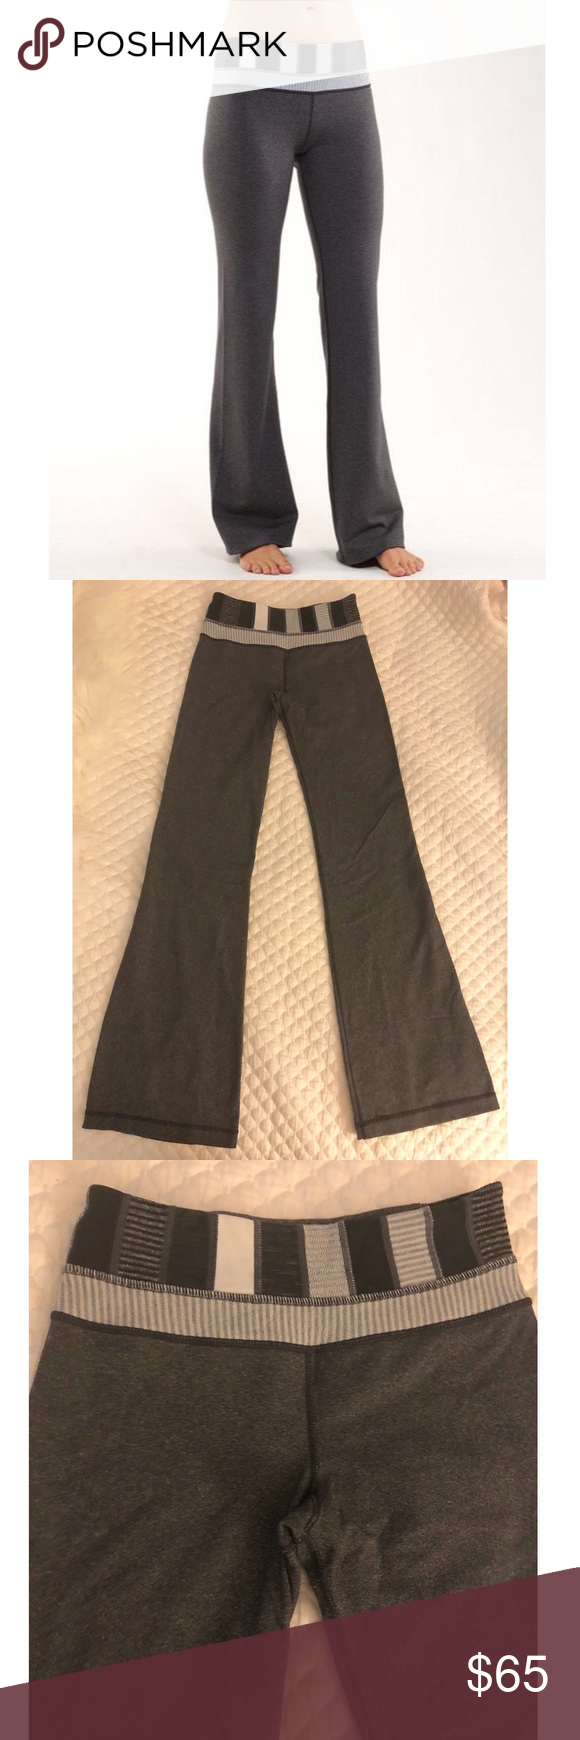 f886e745b8 Lululemon Groove Pant III Fitted bootcut yoga pants. In good used  condition. Minimal pilling if any. Comes from a smoke and pet free home.